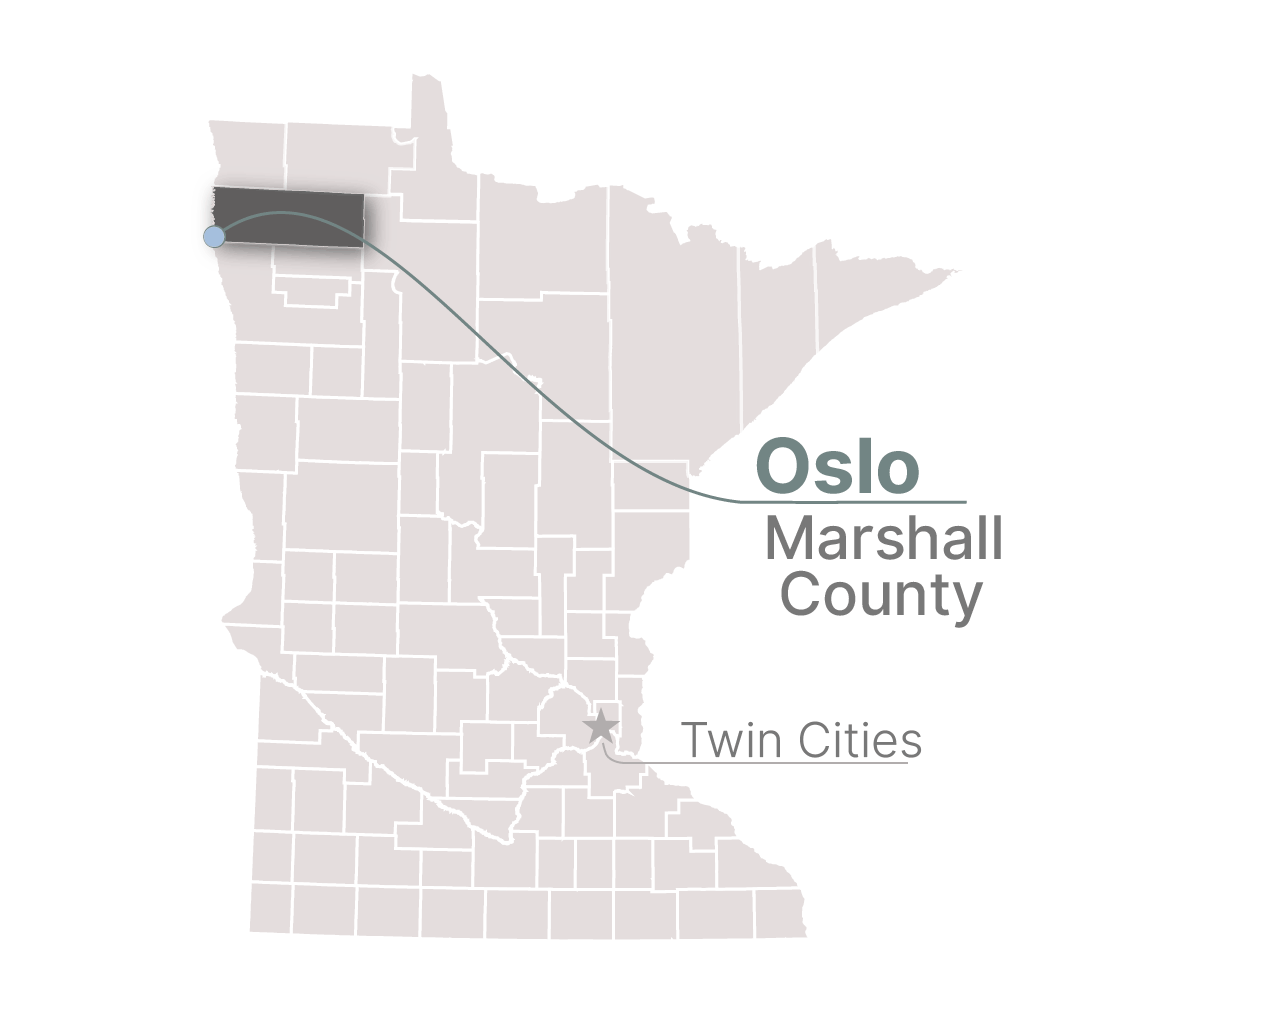 Oslo is on the Red River in the southeast corner of Marshall County.